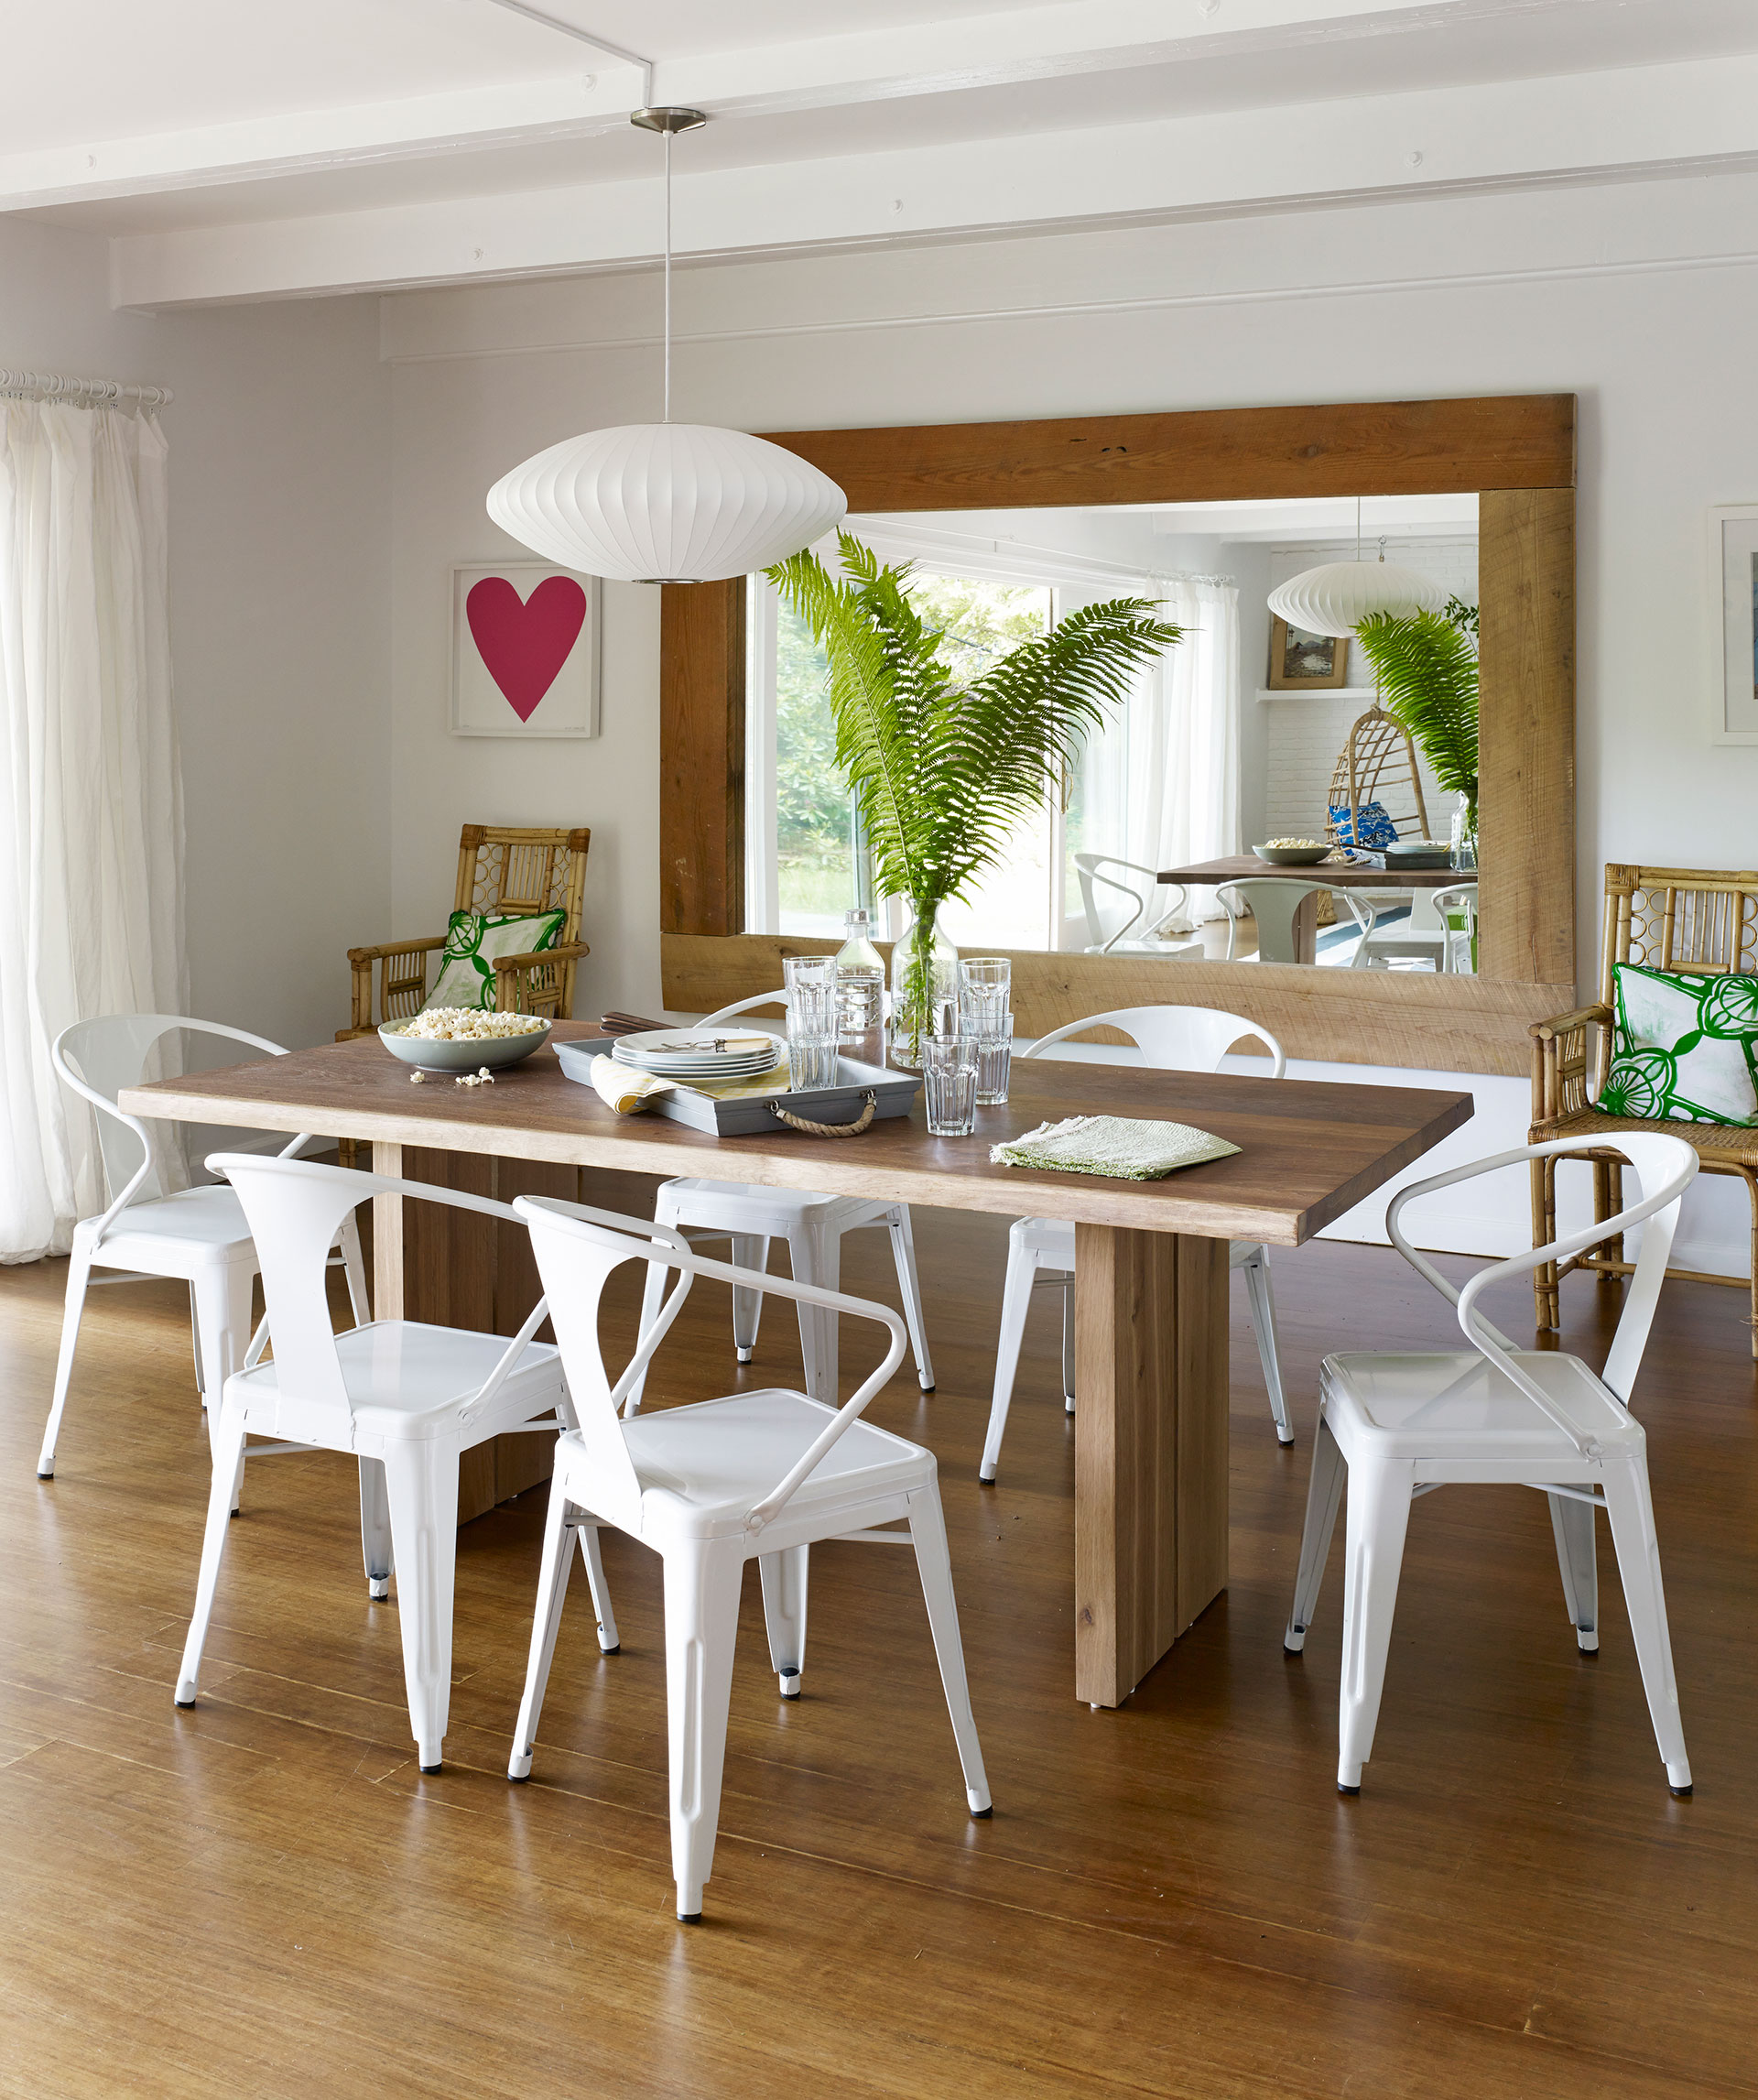 http://clv.h-cdn.co/assets/cm/15/09/54eb61f978097_-_01-family-fun-dining-room-0514-mnqbgz-s2.jpg